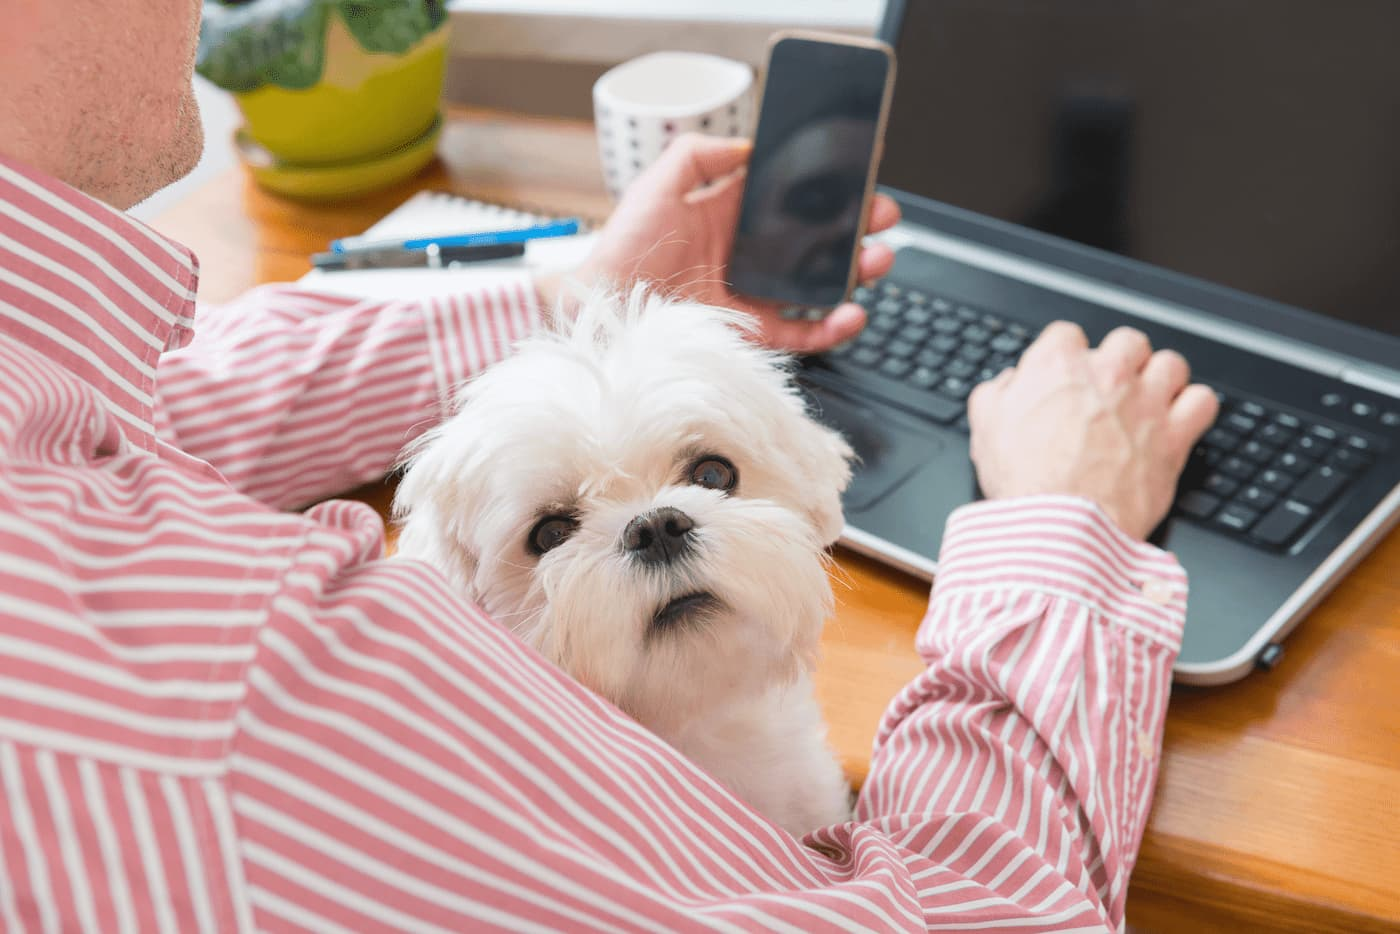 Adapt your rental property to working from home